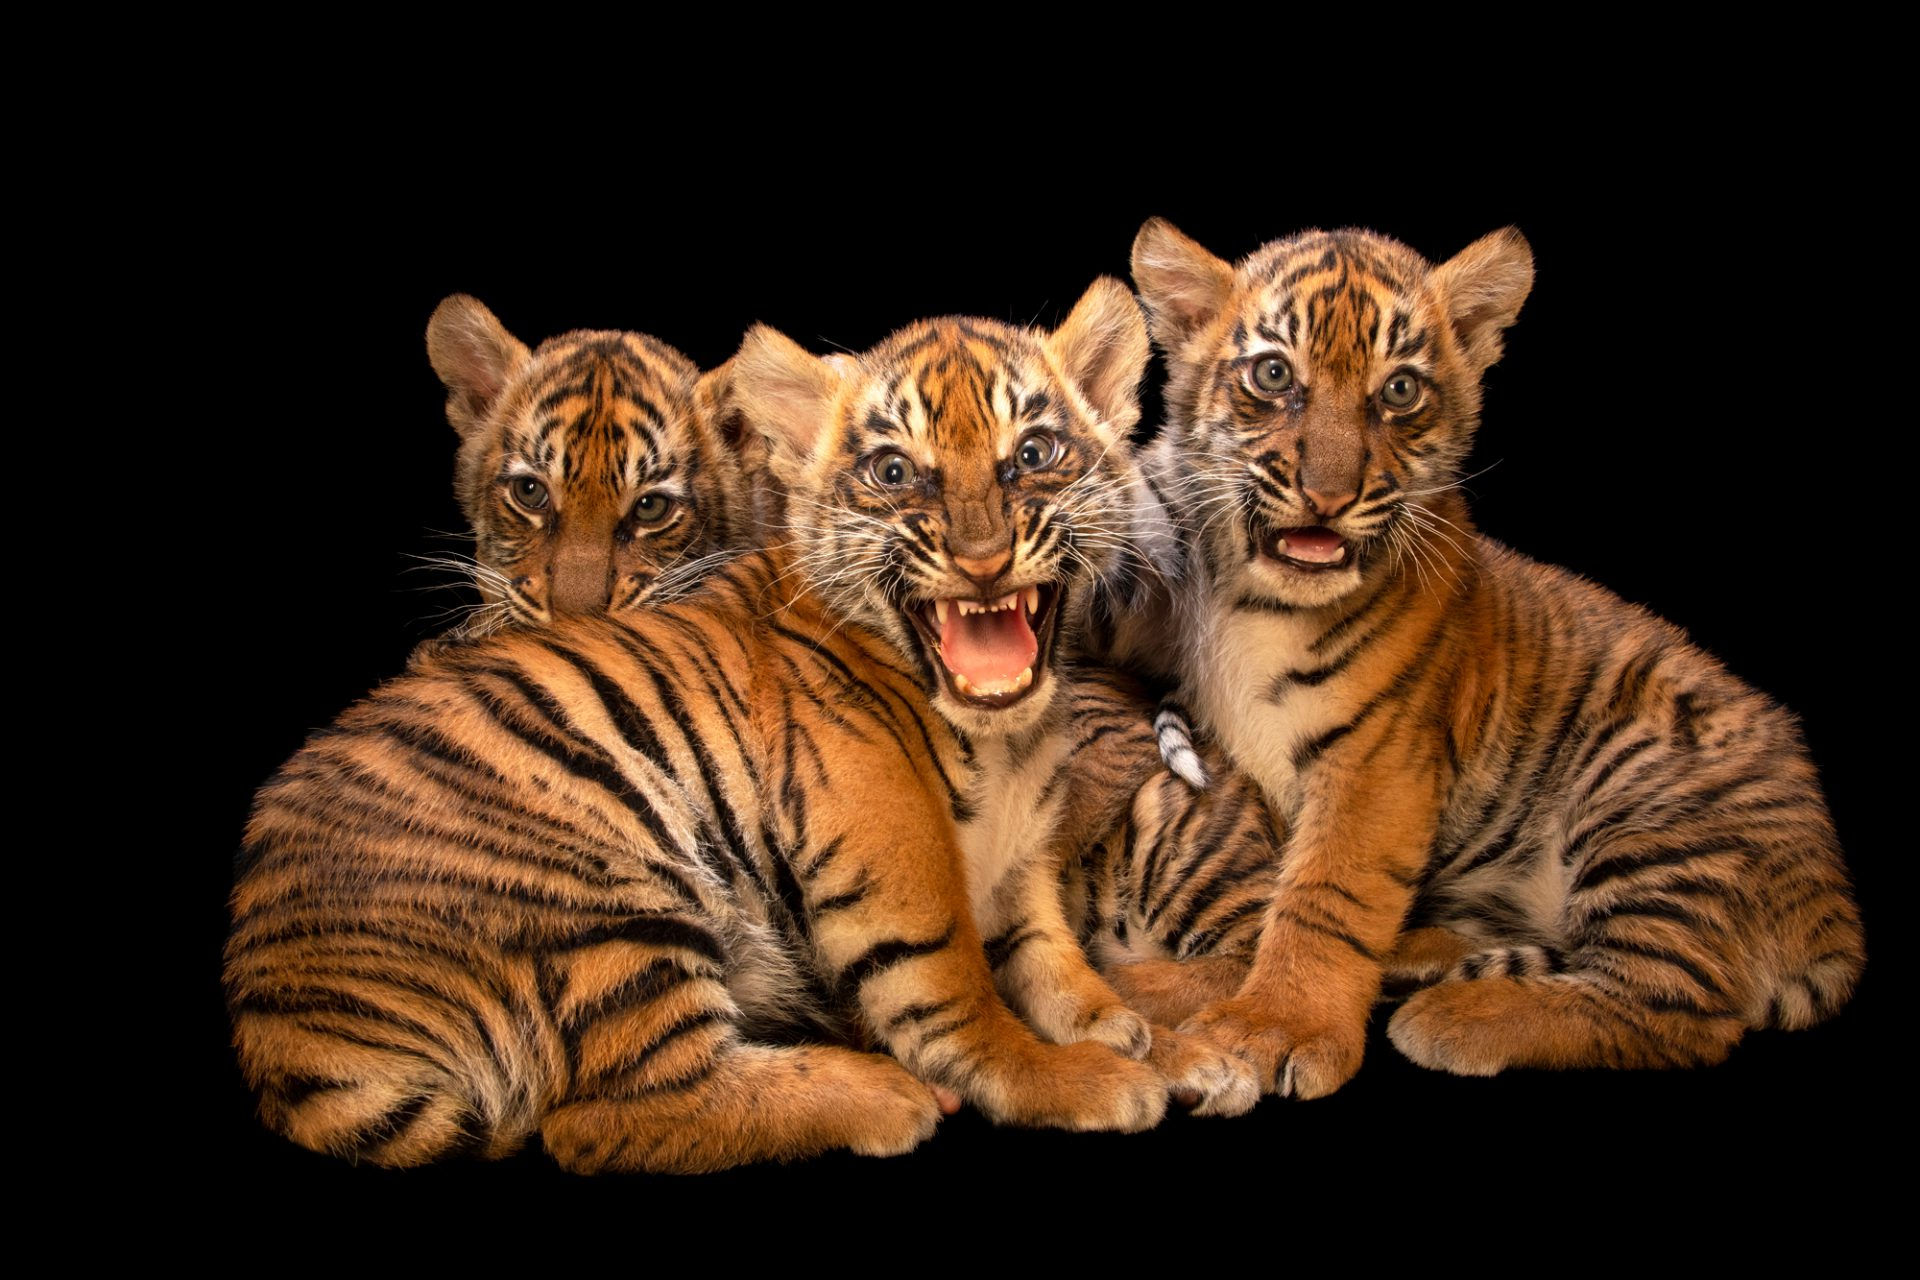 Photo: Sumatran tiger cubs (Panthera tigris sumatrae) at Berlin Tierpark.